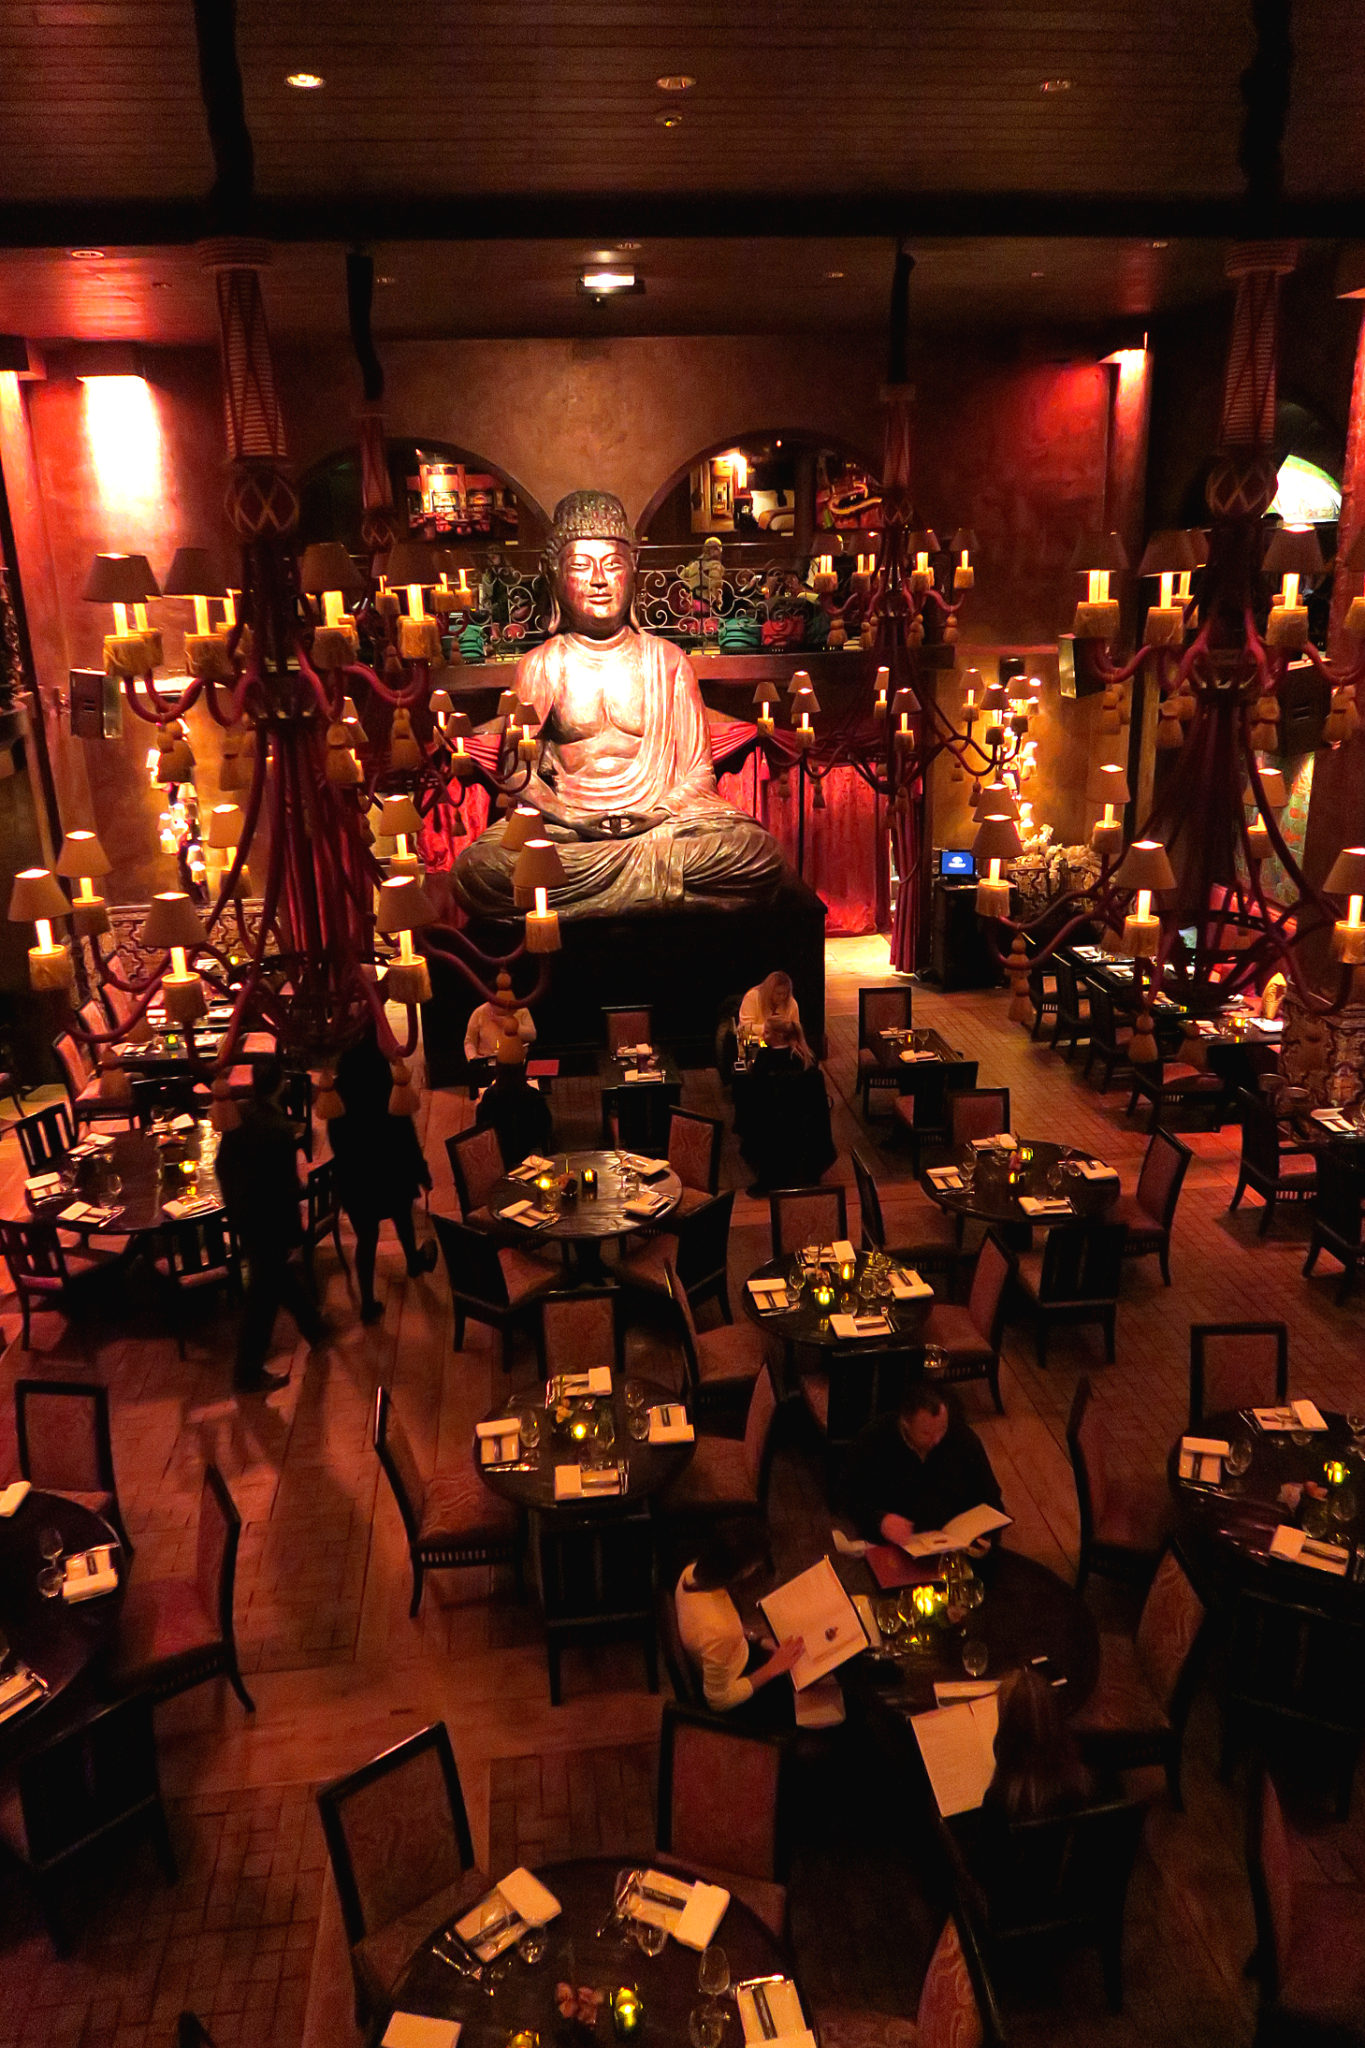 Hemaposesesvalises_buddha_bar_paris_vue_interieure